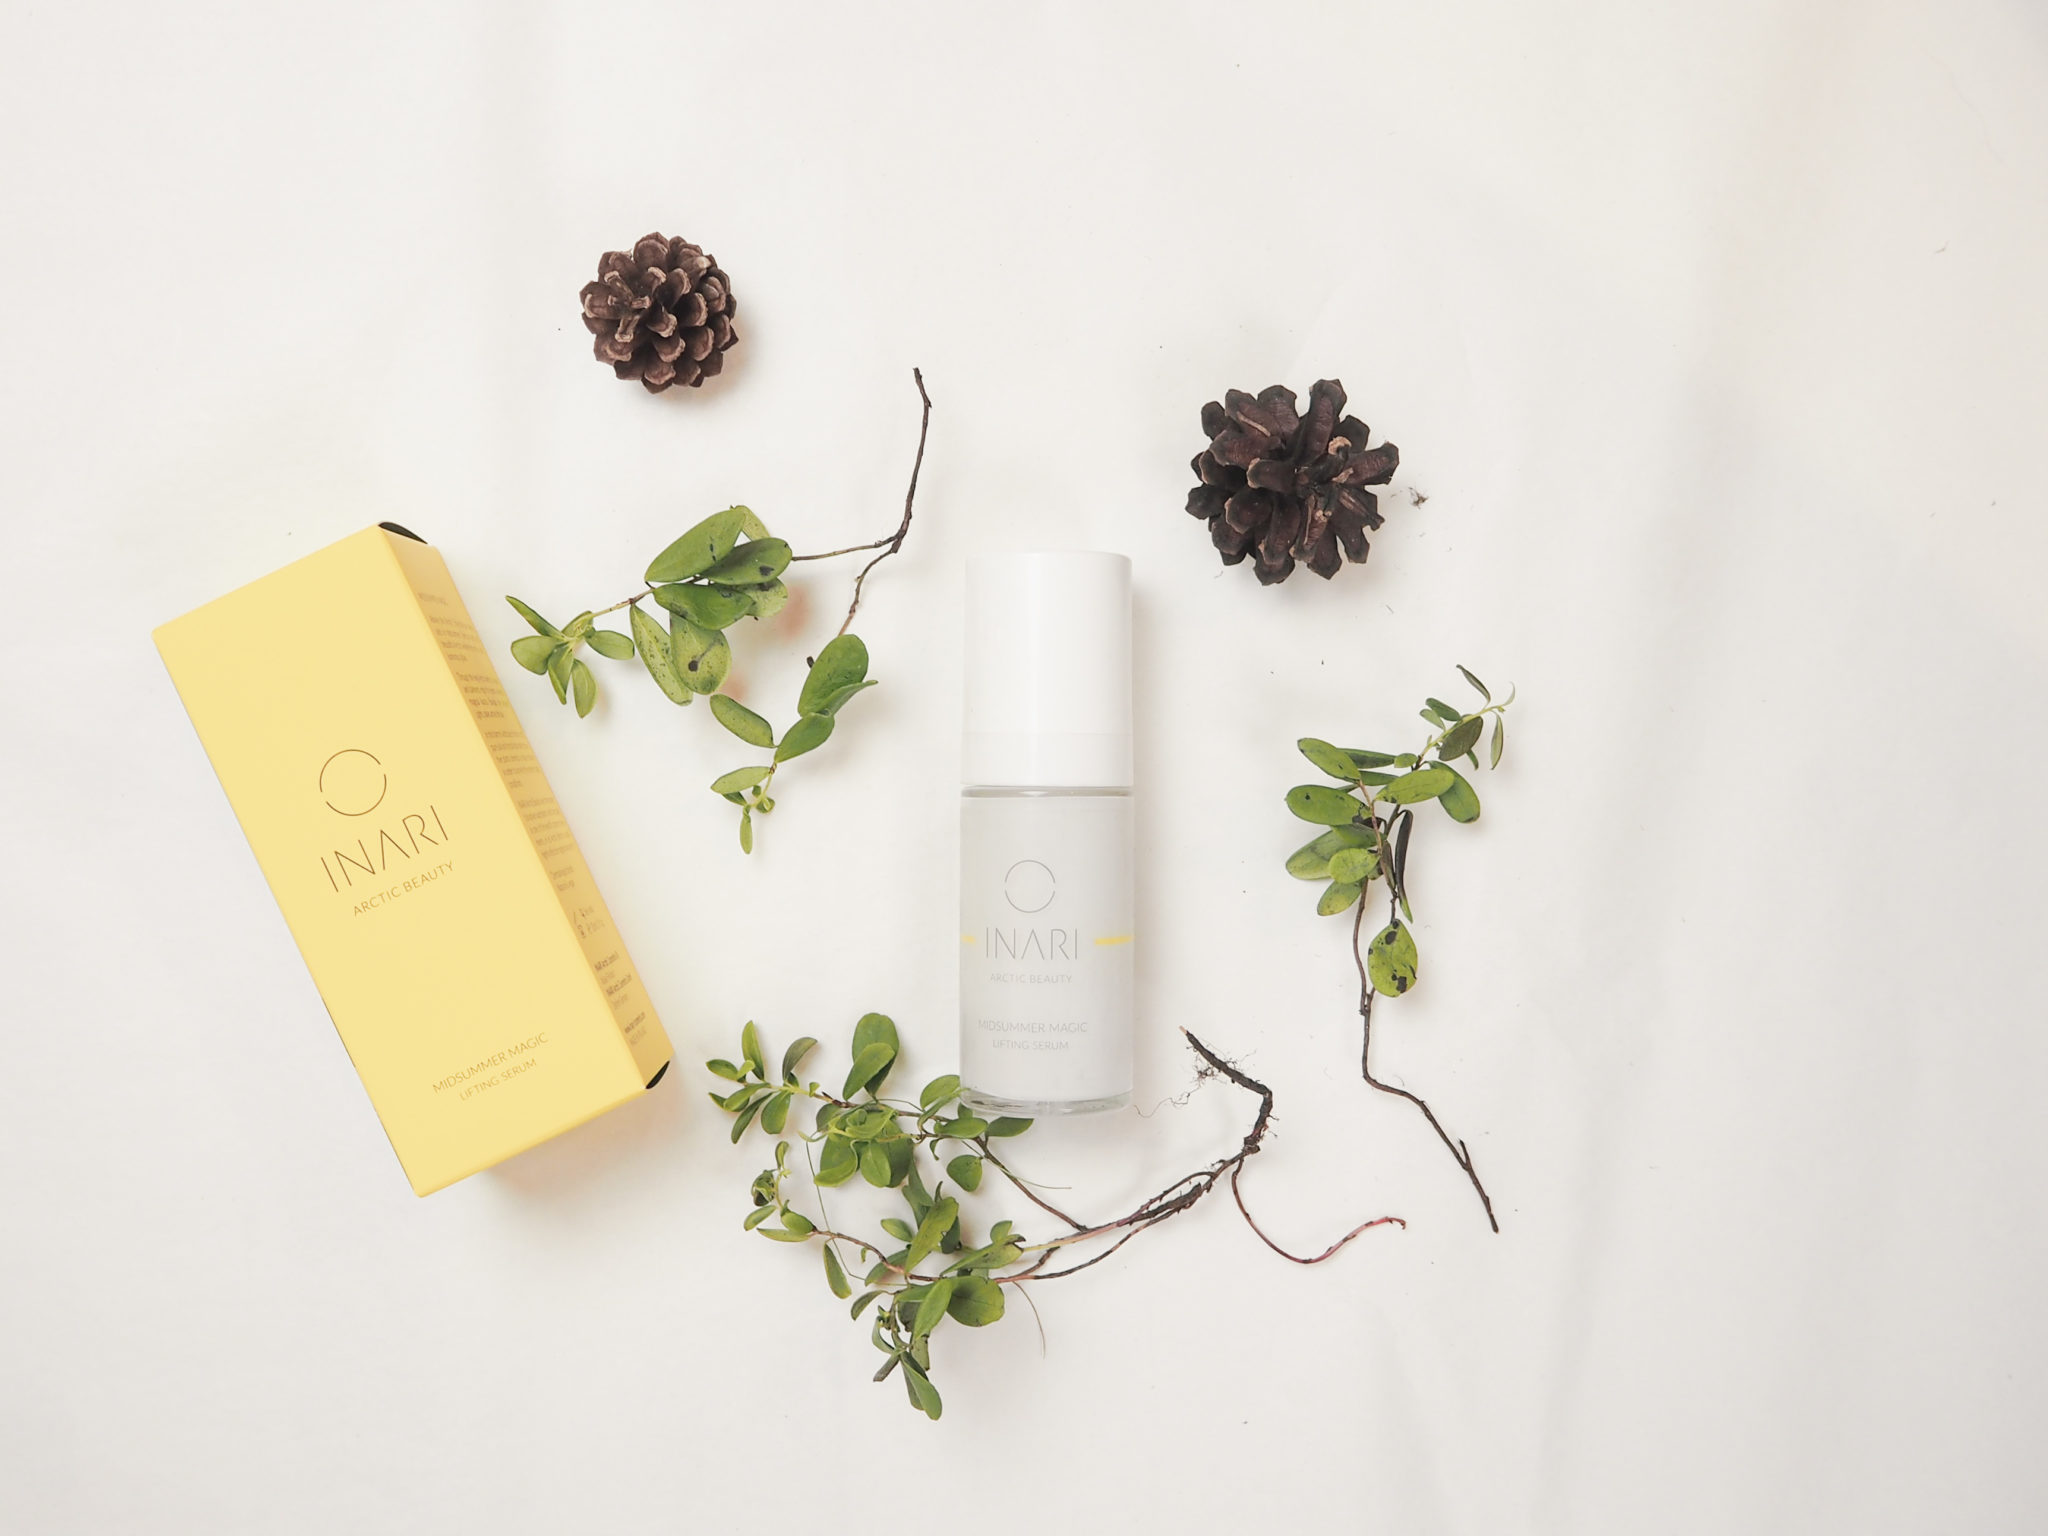 INARI Lifting Serum 2